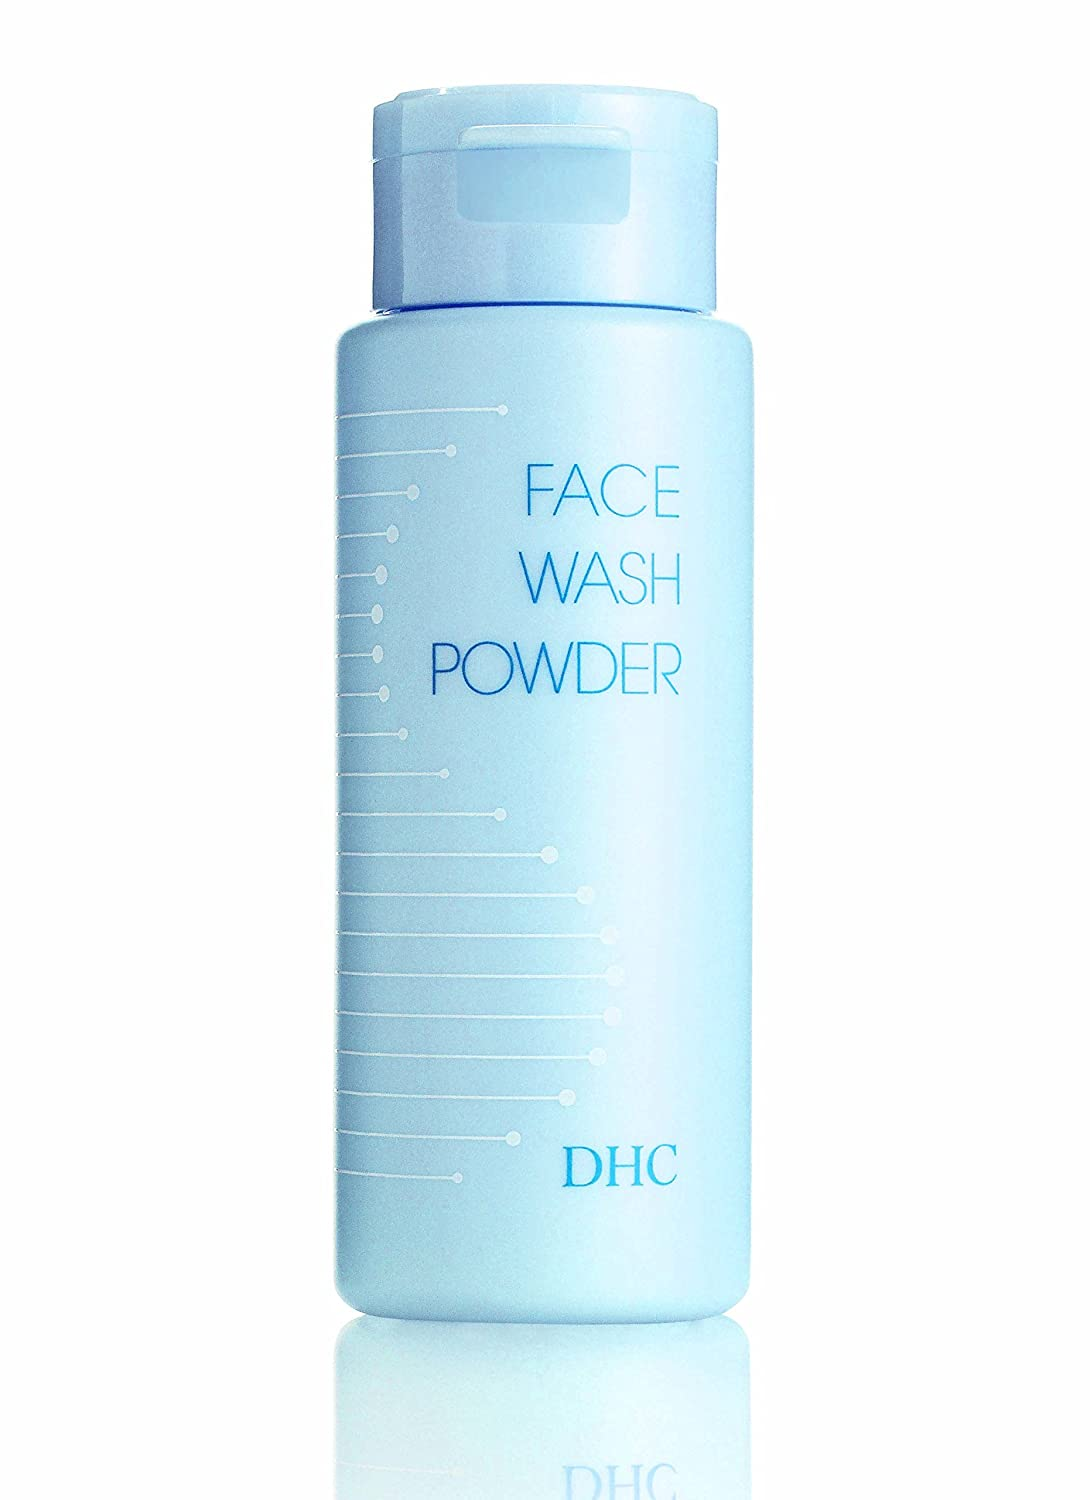 Dhc Face Wash Powder Mentholatum 22465